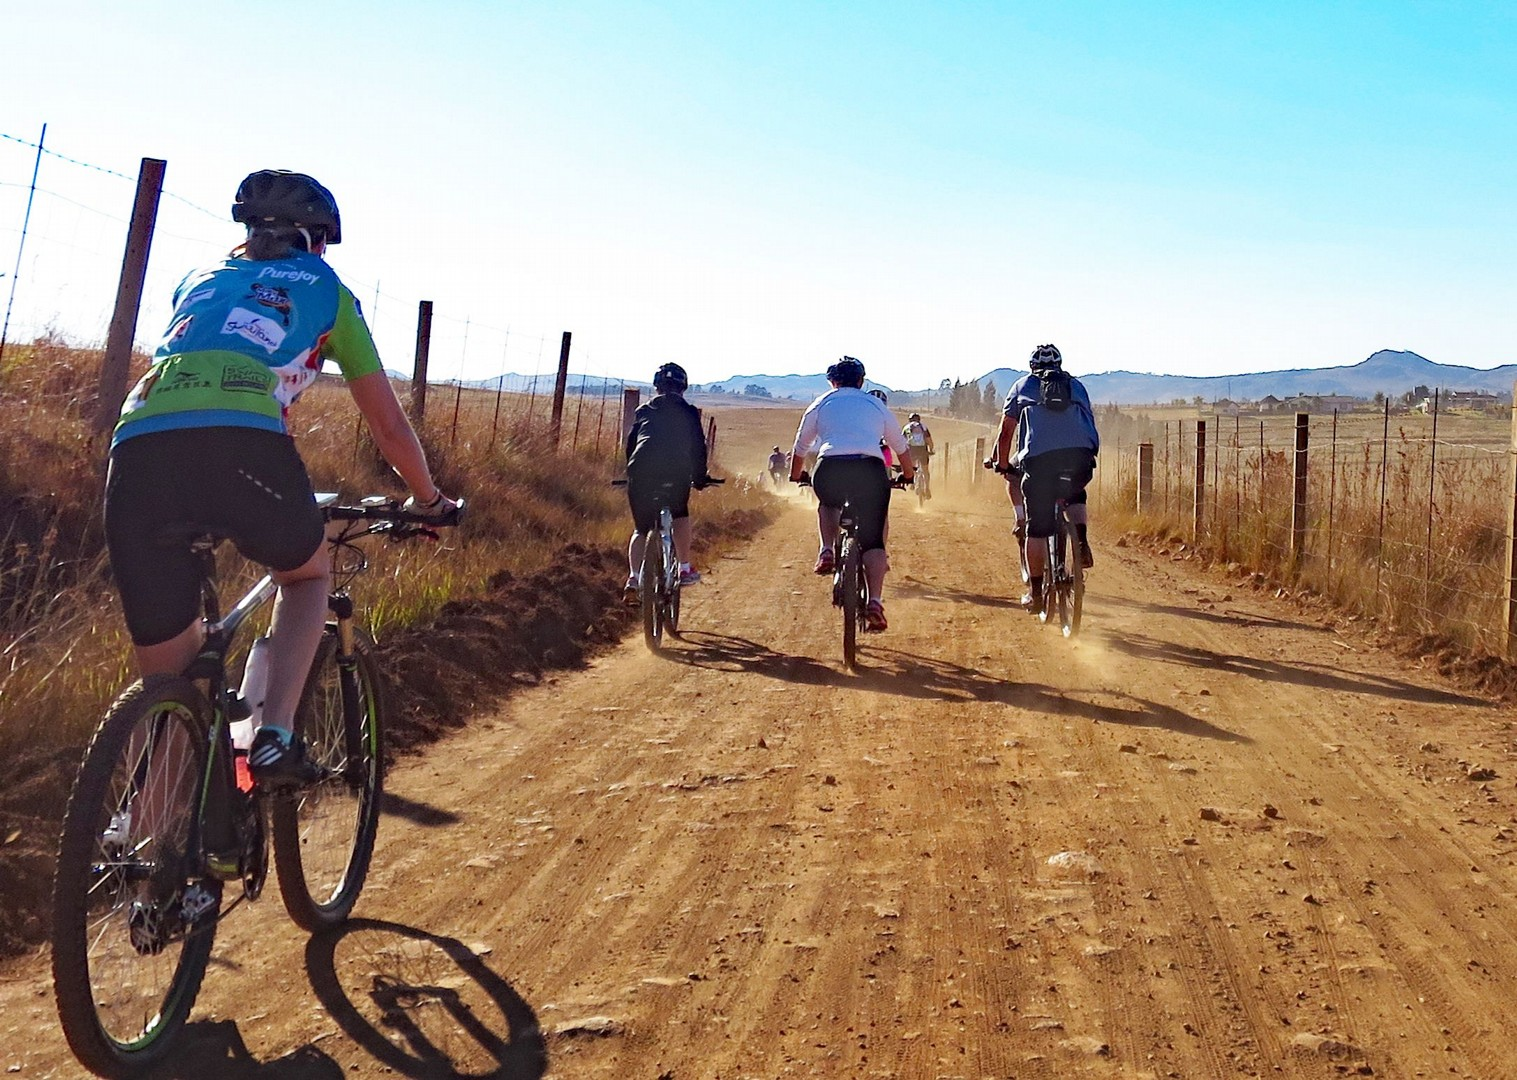 highveld-africa-swaziland-cycling-holiday.jpg - Eswatini (Swaziland) - Cycling Safari - Cycling Adventures